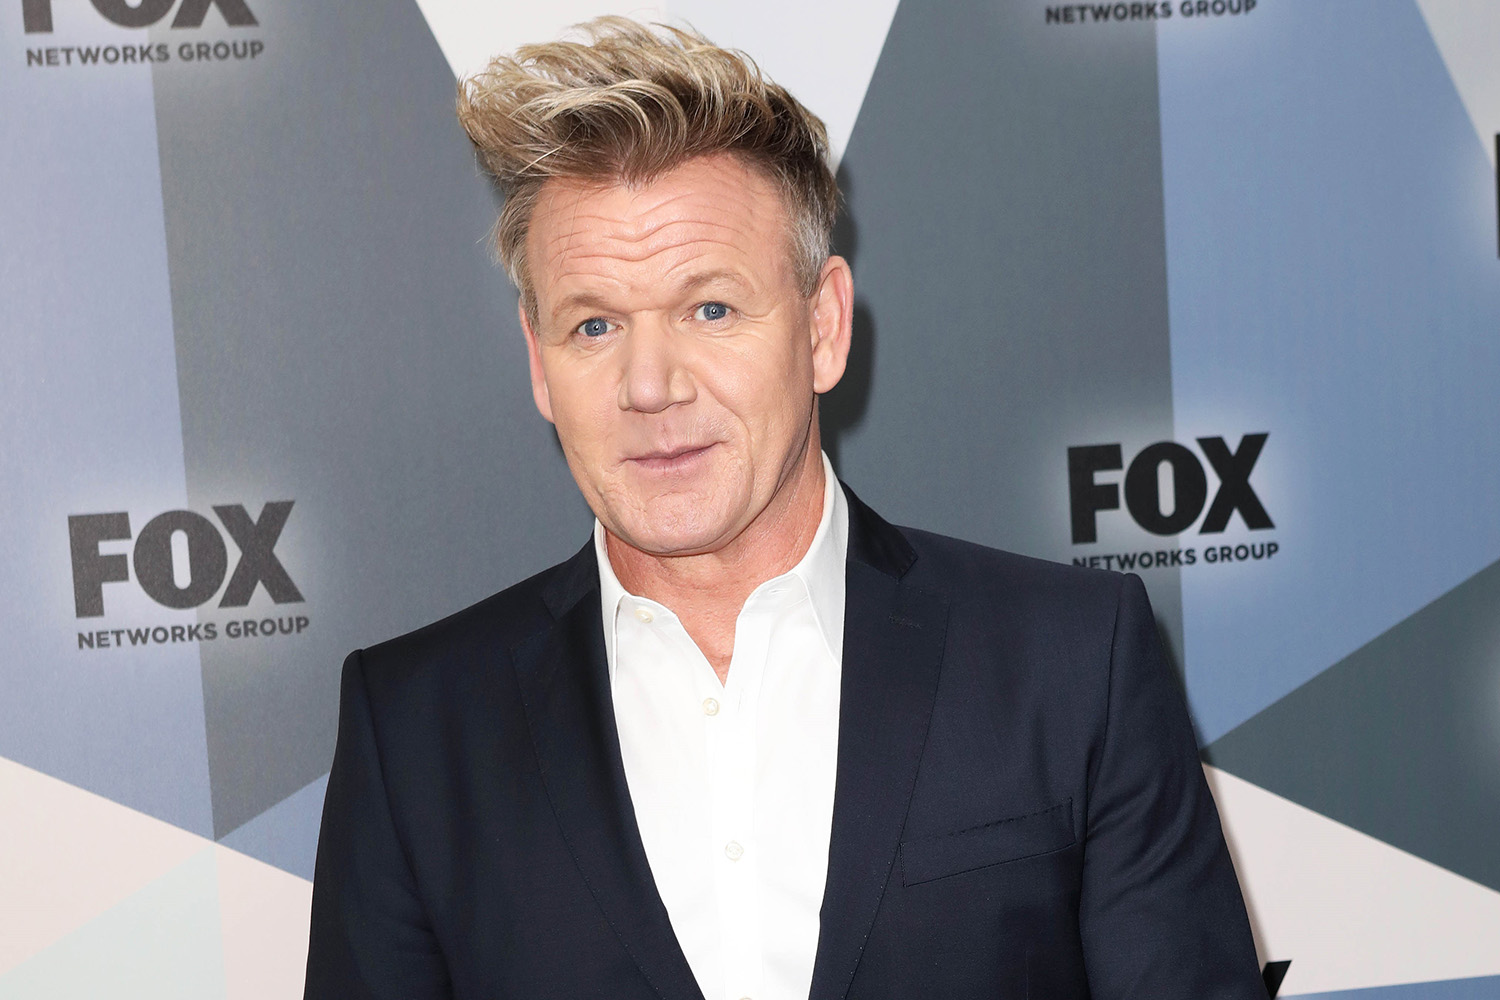 Gordon Ramsay 'in talks to bring back Hell's Kitchen after 16 years'